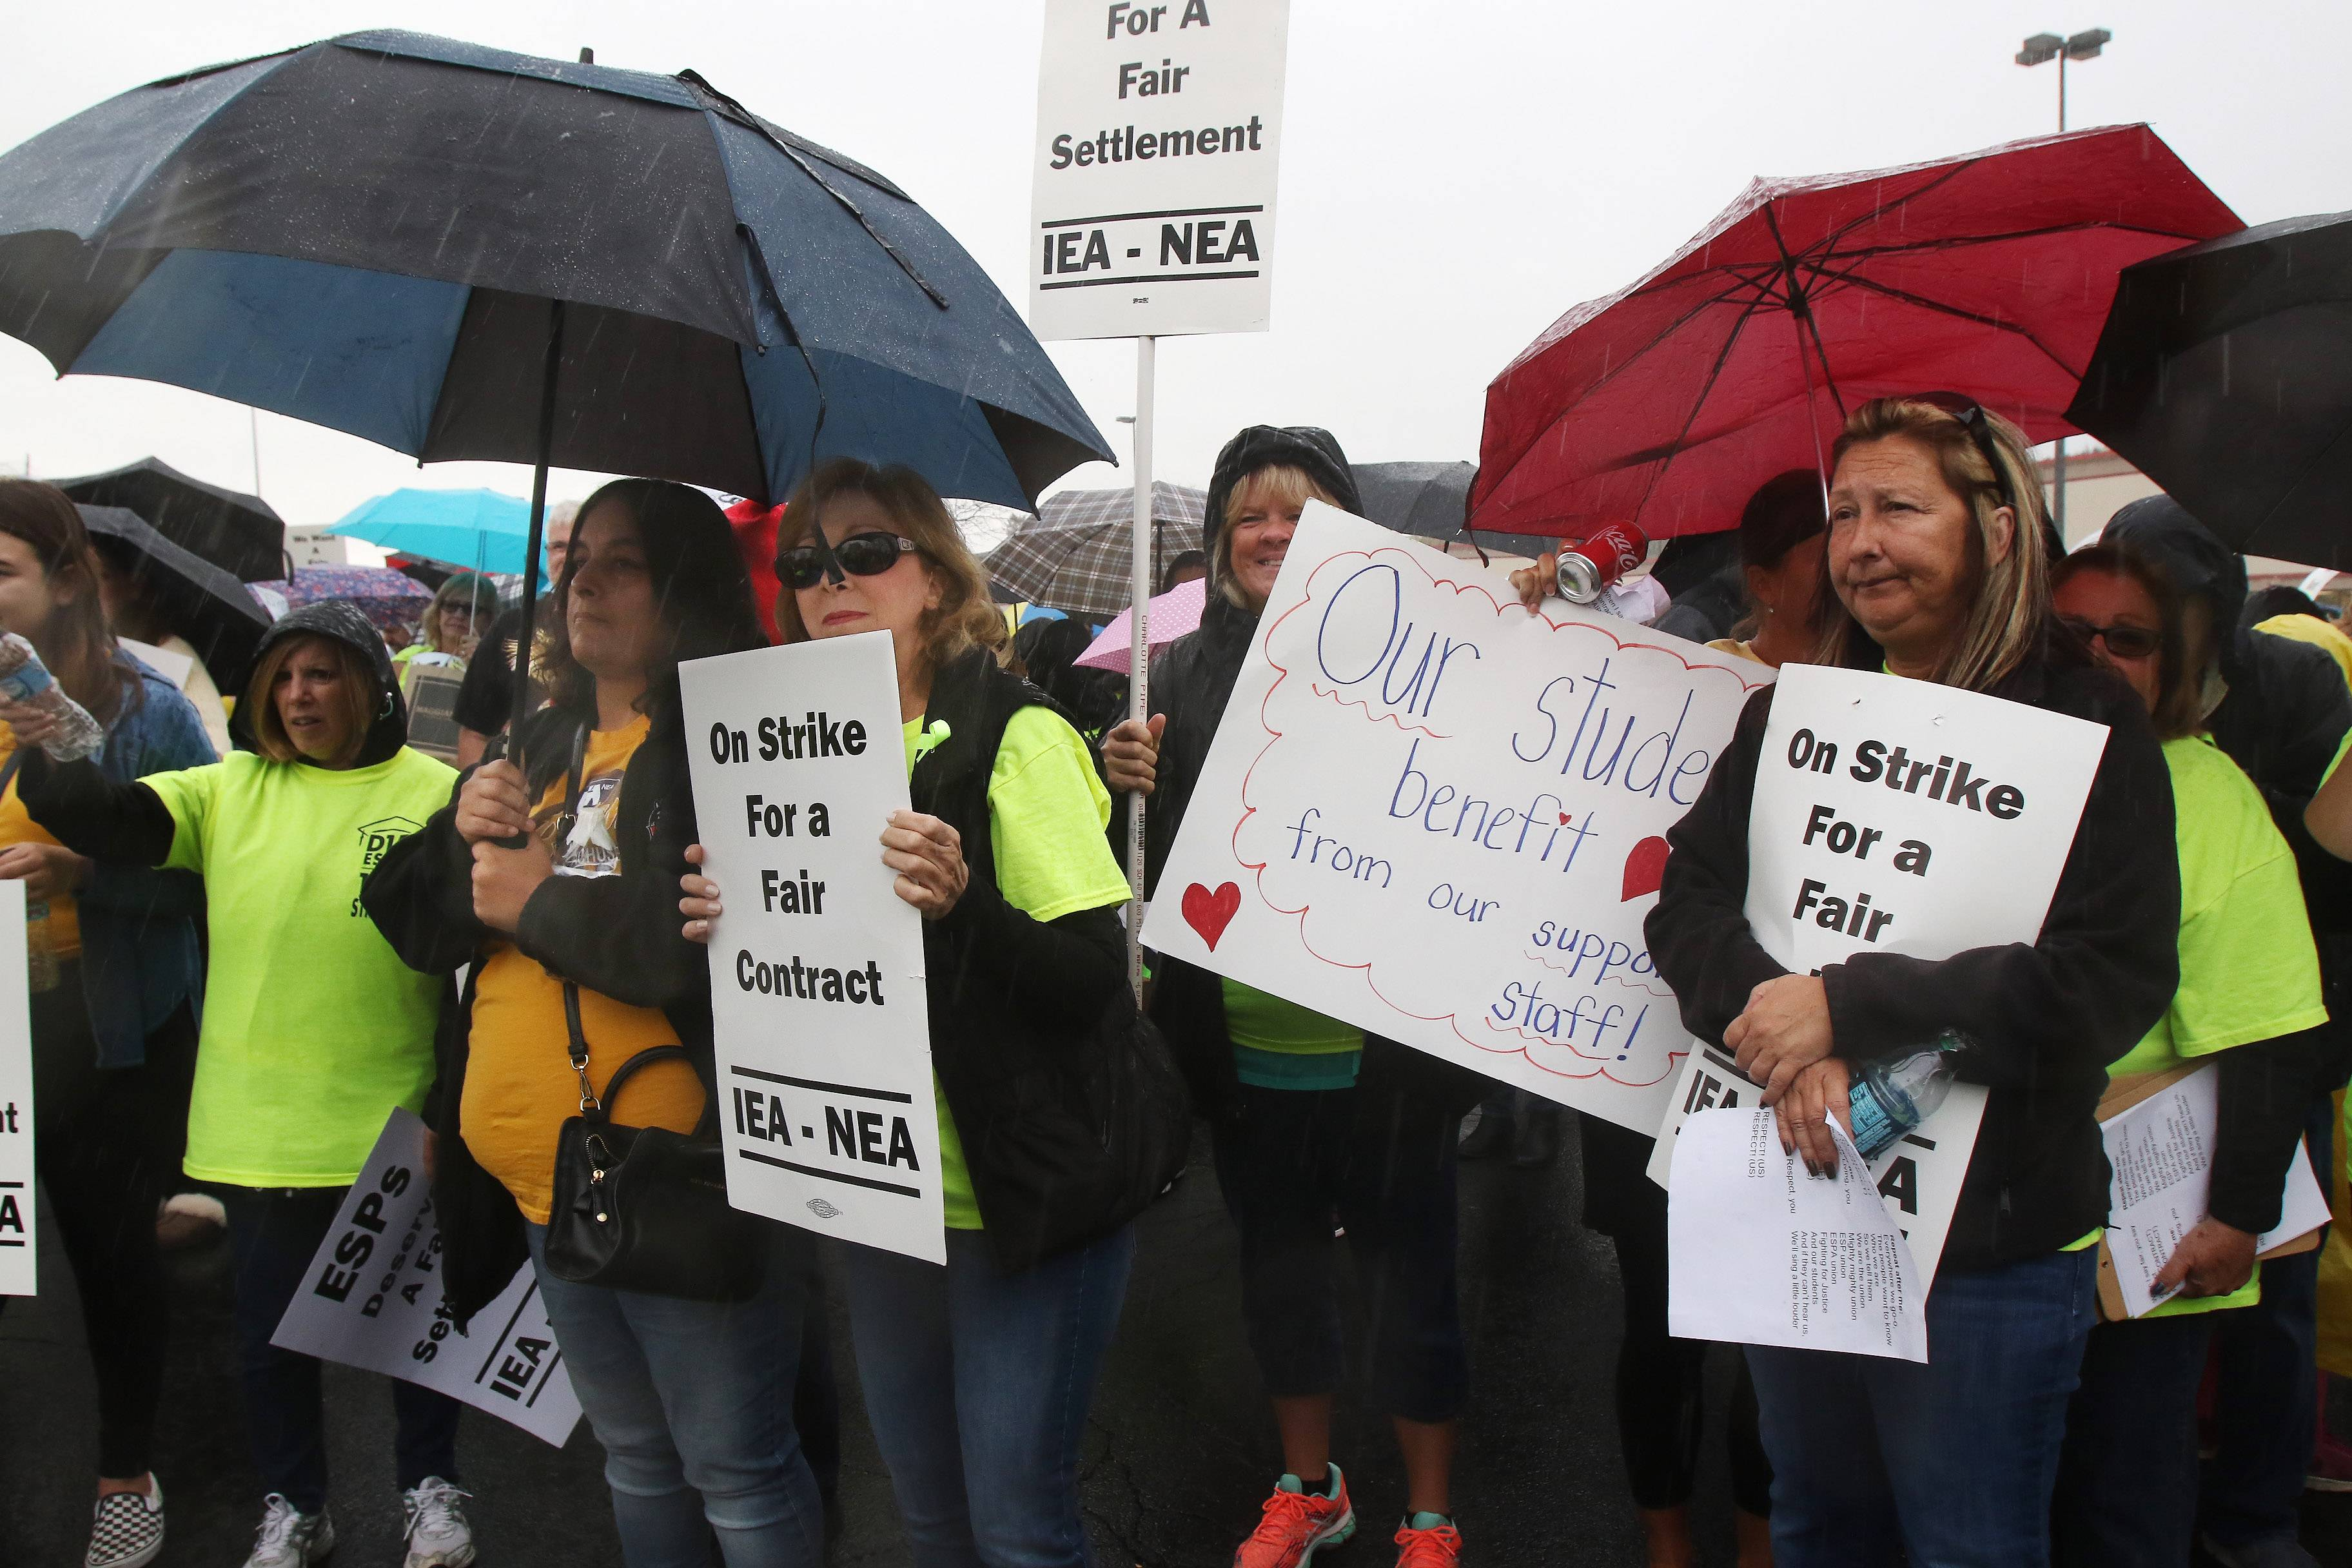 Striking Palatine Township Elementary District 15 workers and their supporters stand in the rain Sunday morning during a rally by the Educational Support Personnel Association. After the rally, they marched to District 15 headquarters, where negotiations resumed.